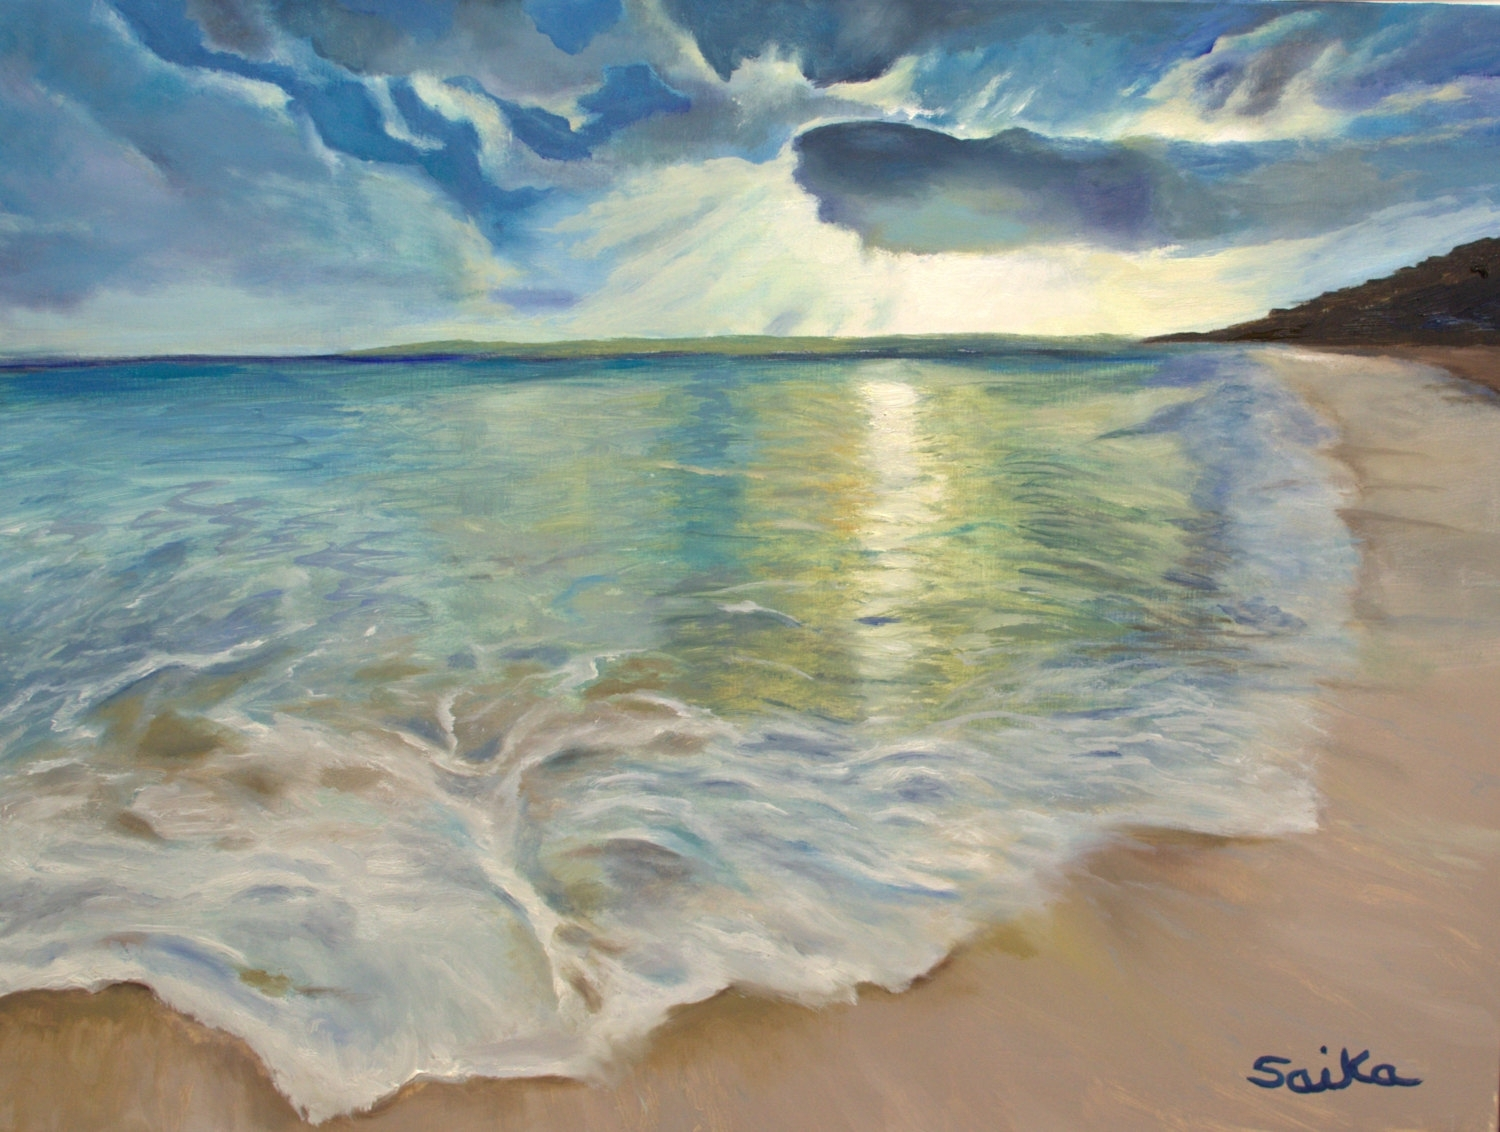 Summer Love, Oil Painting 18X24, Beach Scene,ocean, Wall Art, Home In Best And Newest Canvas Wall Art Beach Scenes (View 7 of 15)